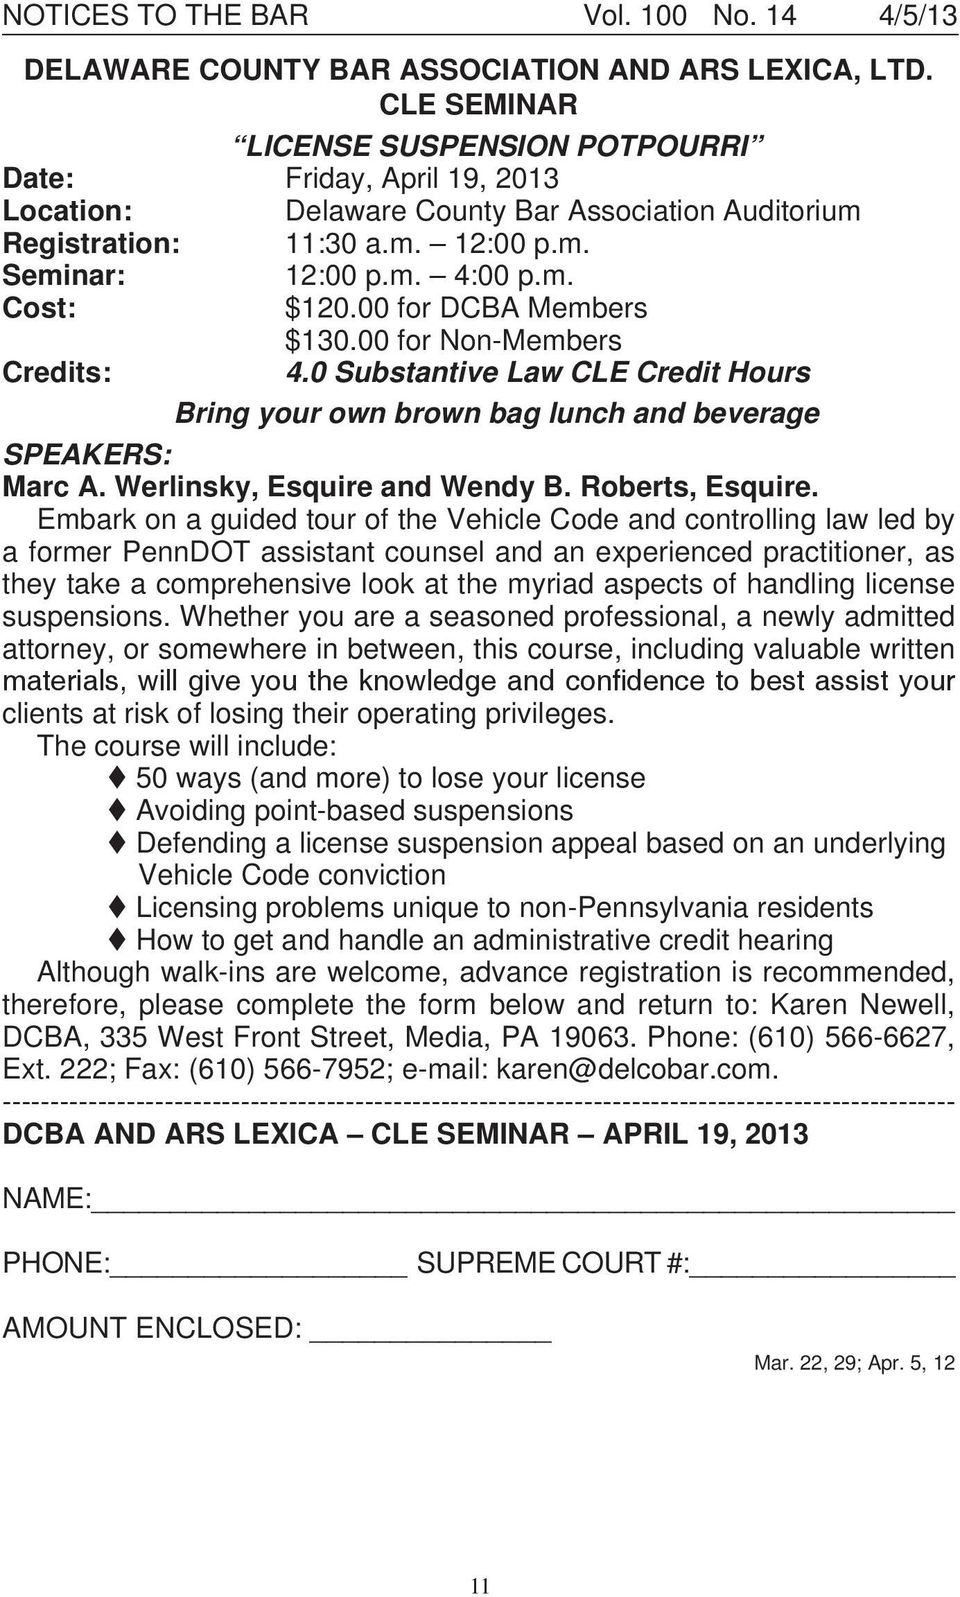 00 for DCBA Members $130.00 for Non-Members Credits: 4.0 Substantive Law CLE Credit Hours Bring your own brown bag lunch and beverage SPEAKERS: Marc A. Werlinsky, Esquire and Wendy B.